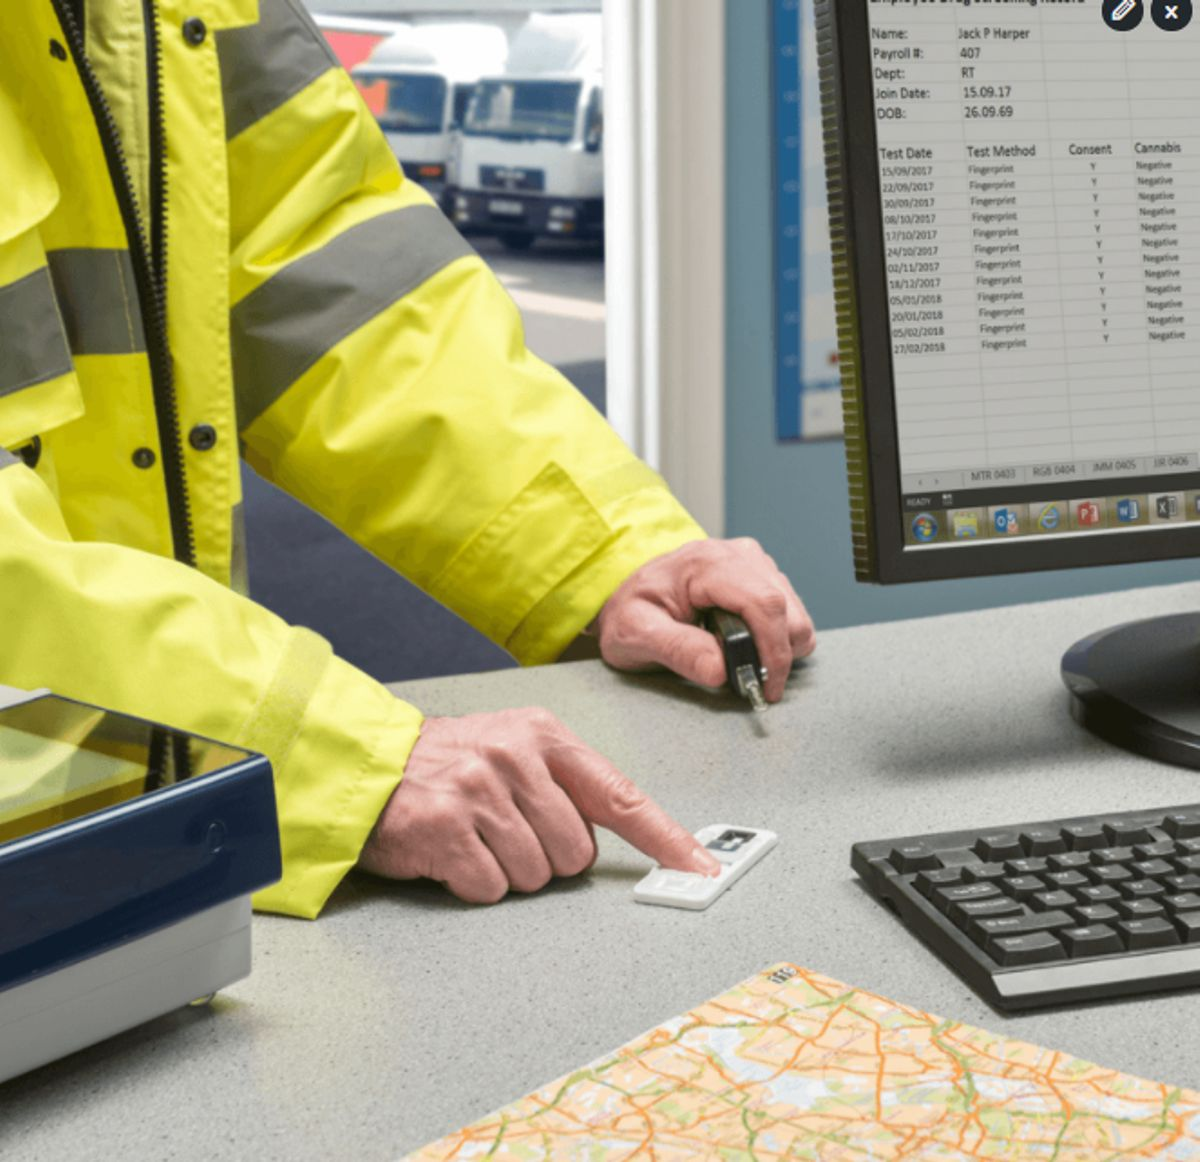 Fingerprint drug testing for drivers now a reality for Transport and Logistics industry